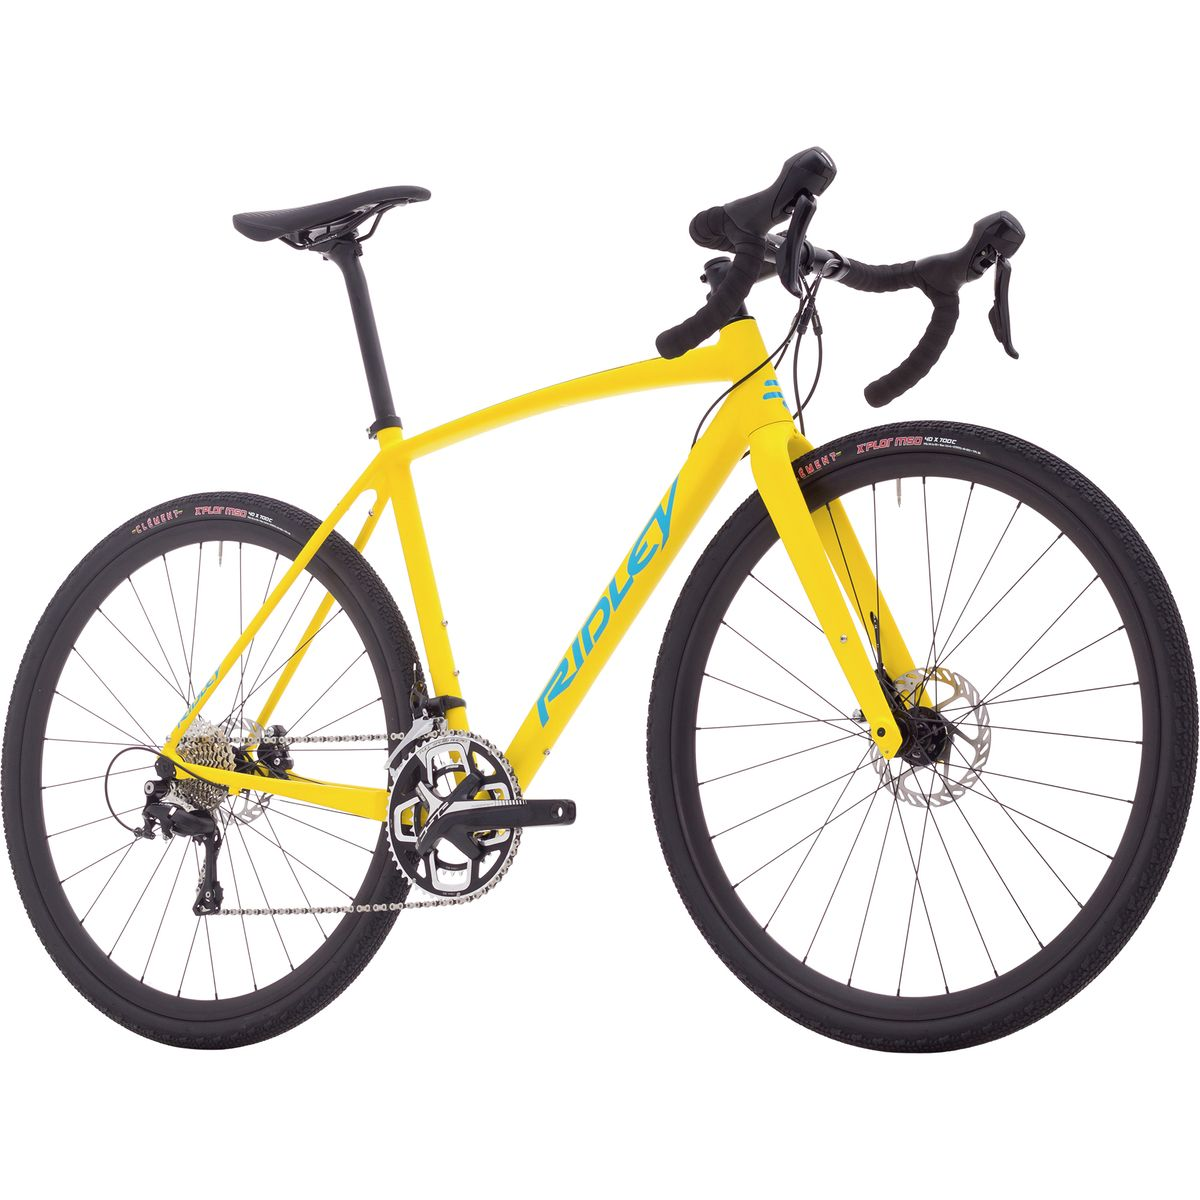 Ridley X-Trail Alloy 105 Complete Bike